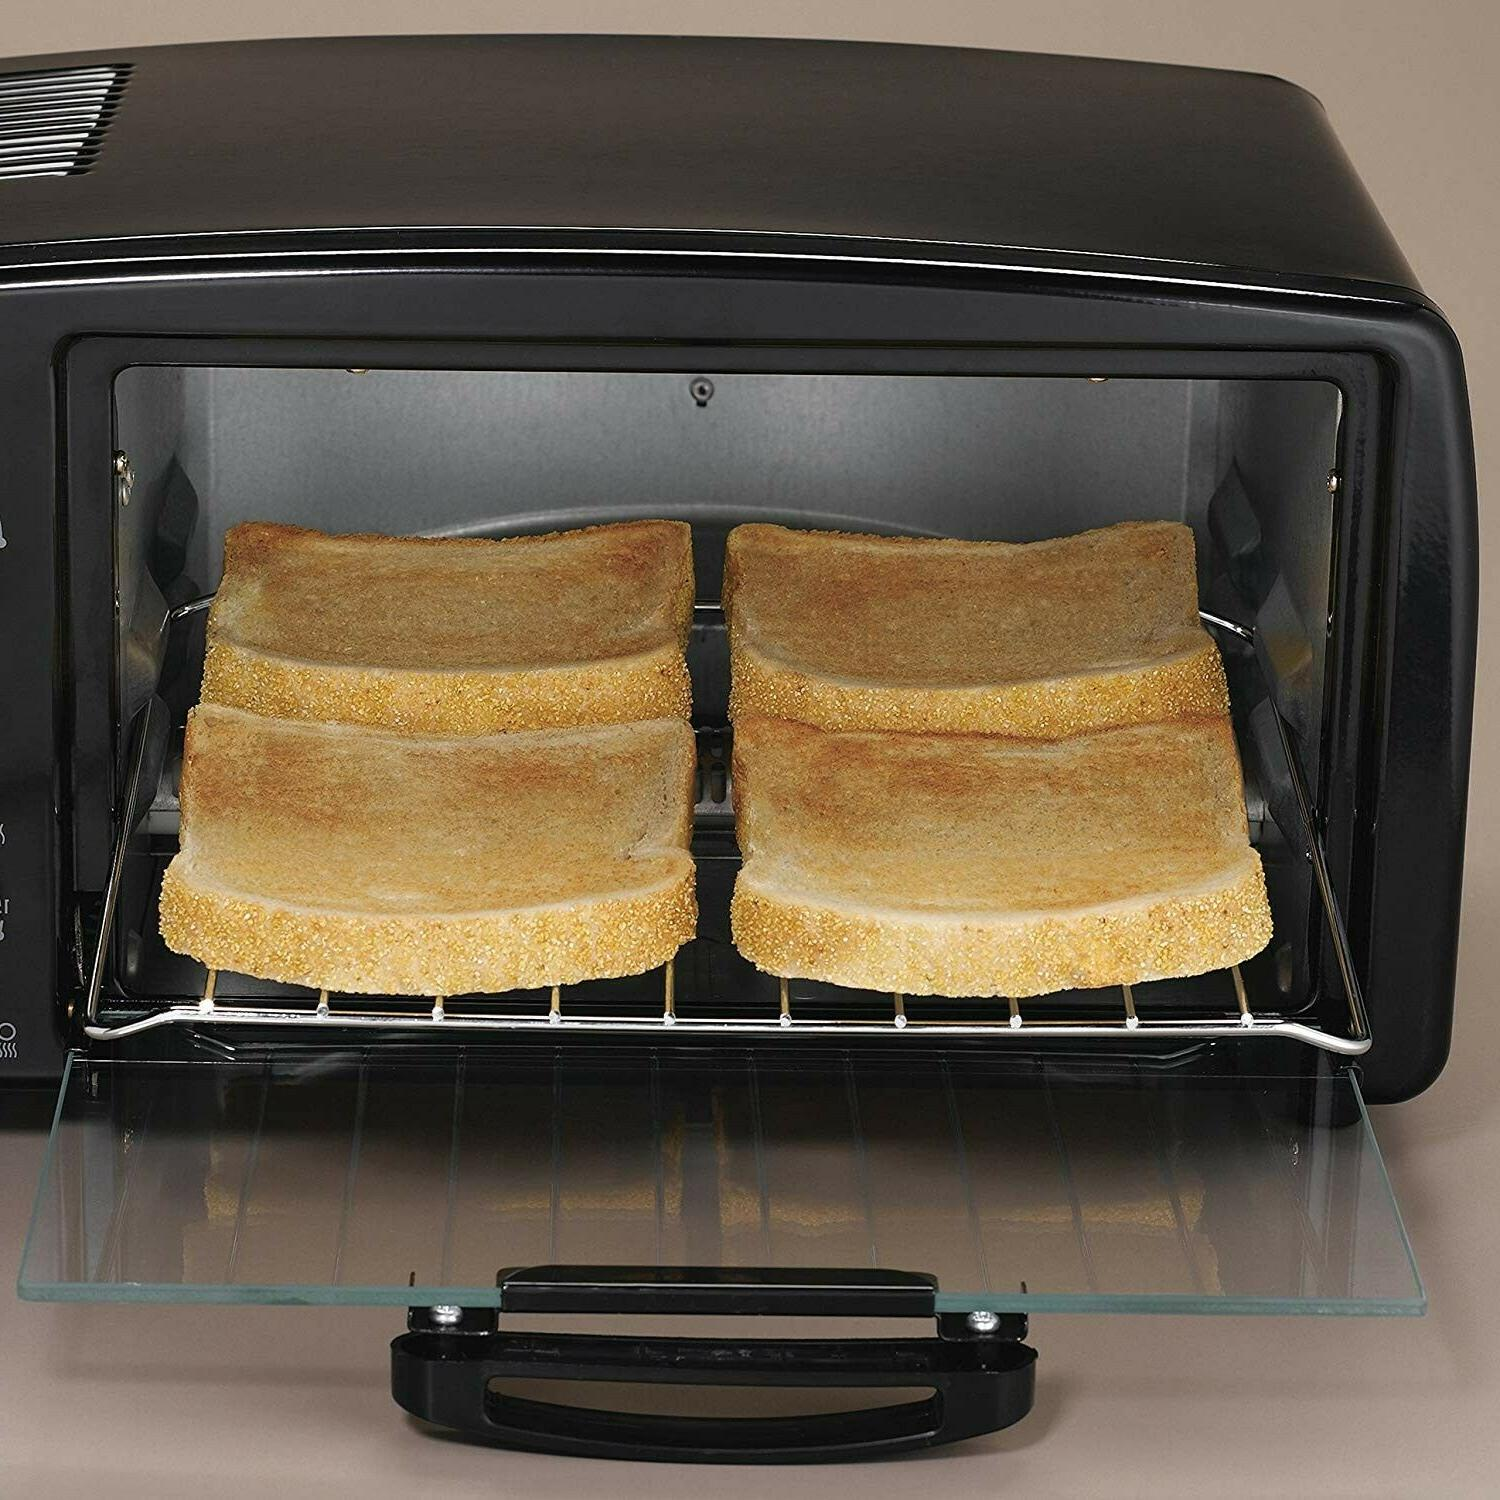 Convection Toaster Oven Beach 4 Pizza Toasts Food NEW